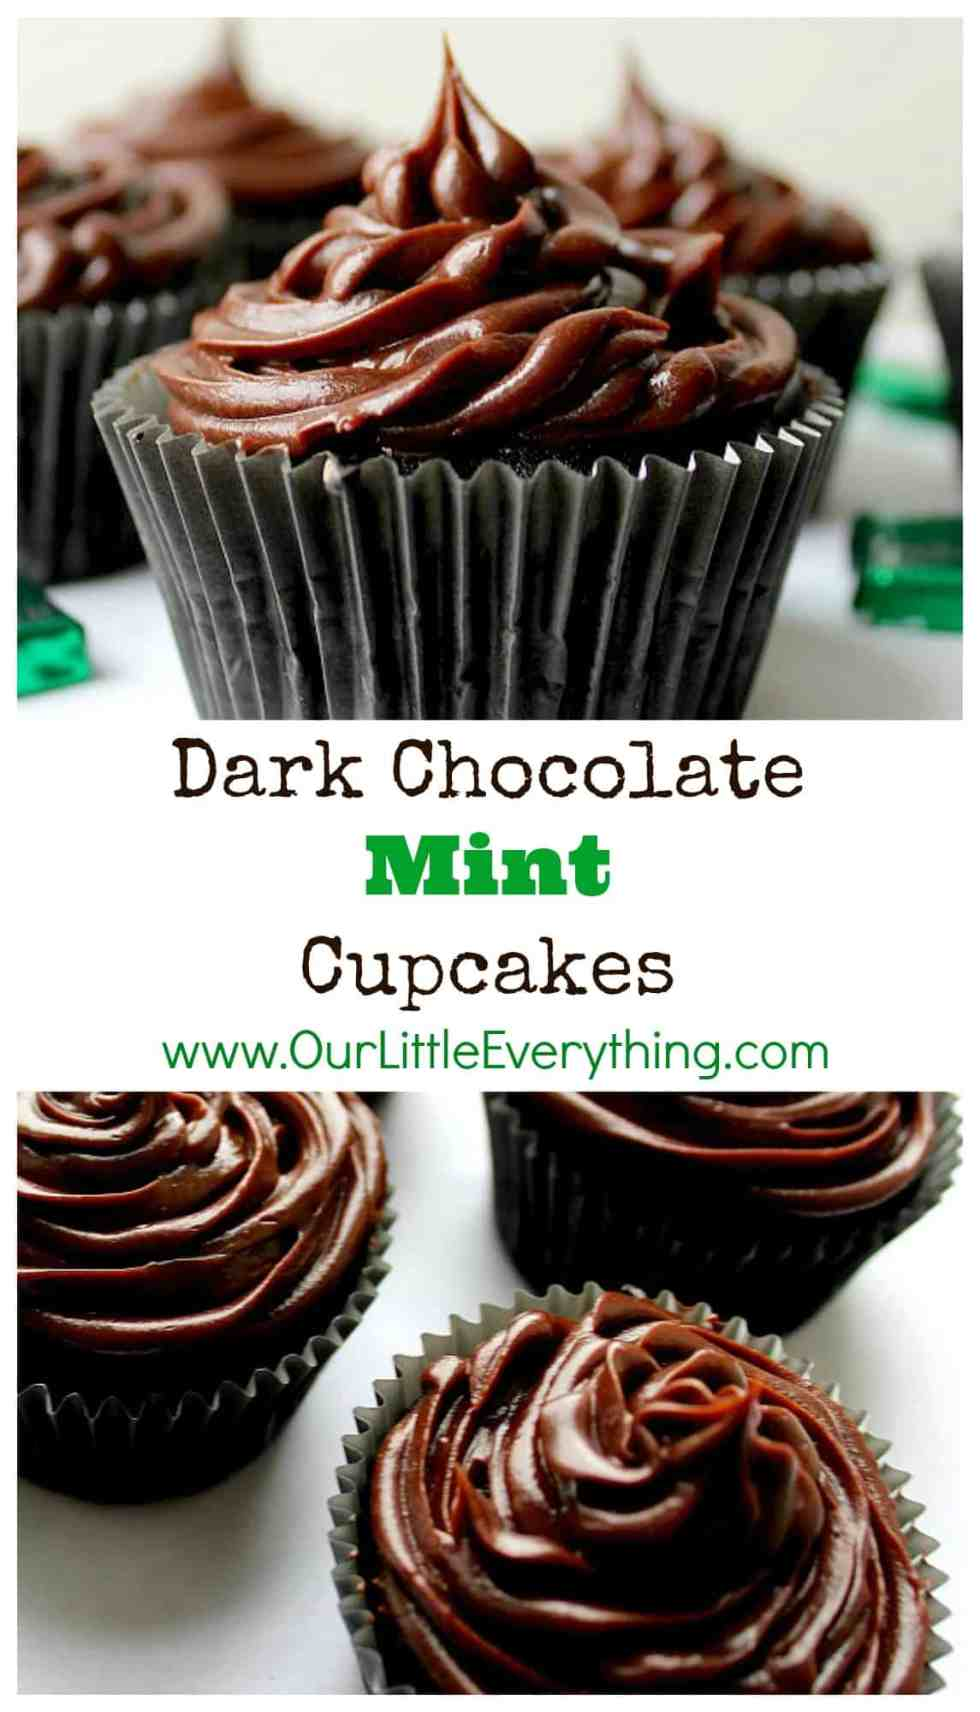 Ohhh these Dark Chocolate Mint Cupcakes were so easy to make and very indulgent! The mint is not overpowering at all! They will make the perfect Valentine's Day dessert but I can see making these for birthdays, as a St. Patrick's Day dessert, or even for Christmas! | www.OurLittleEverything.com